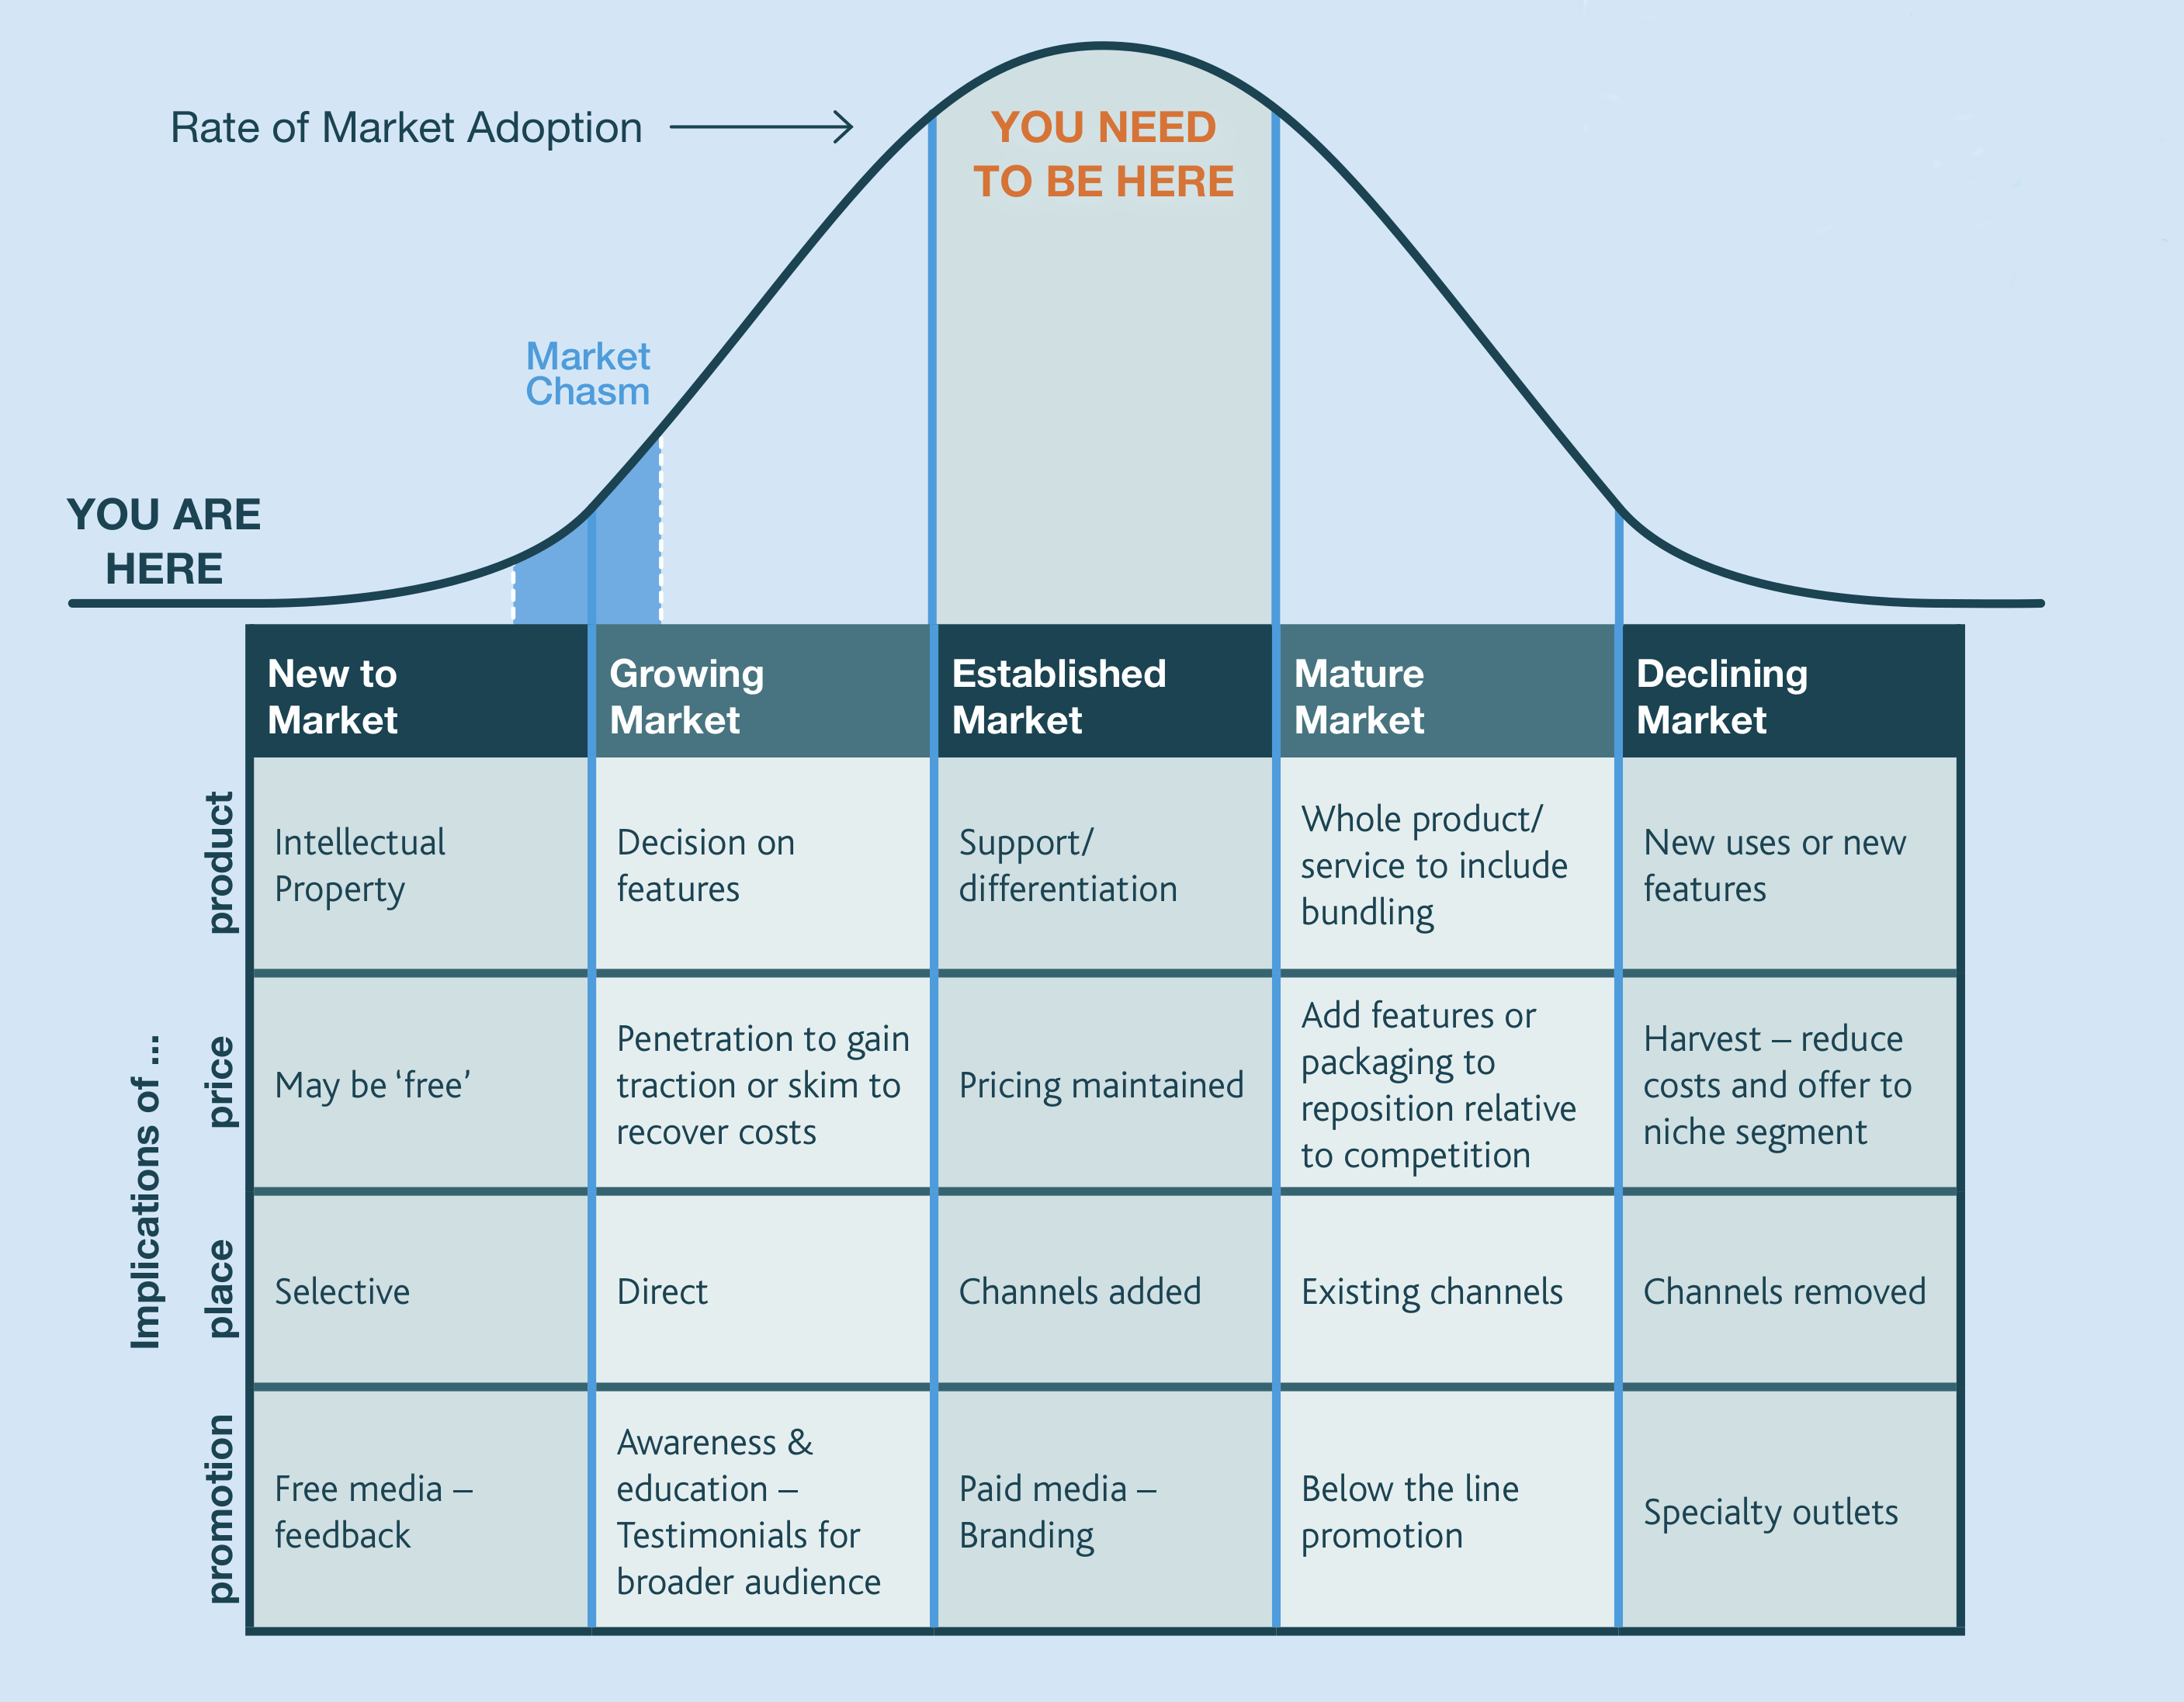 content/images/entrepreneurial-innovation/market-growth-curve.png